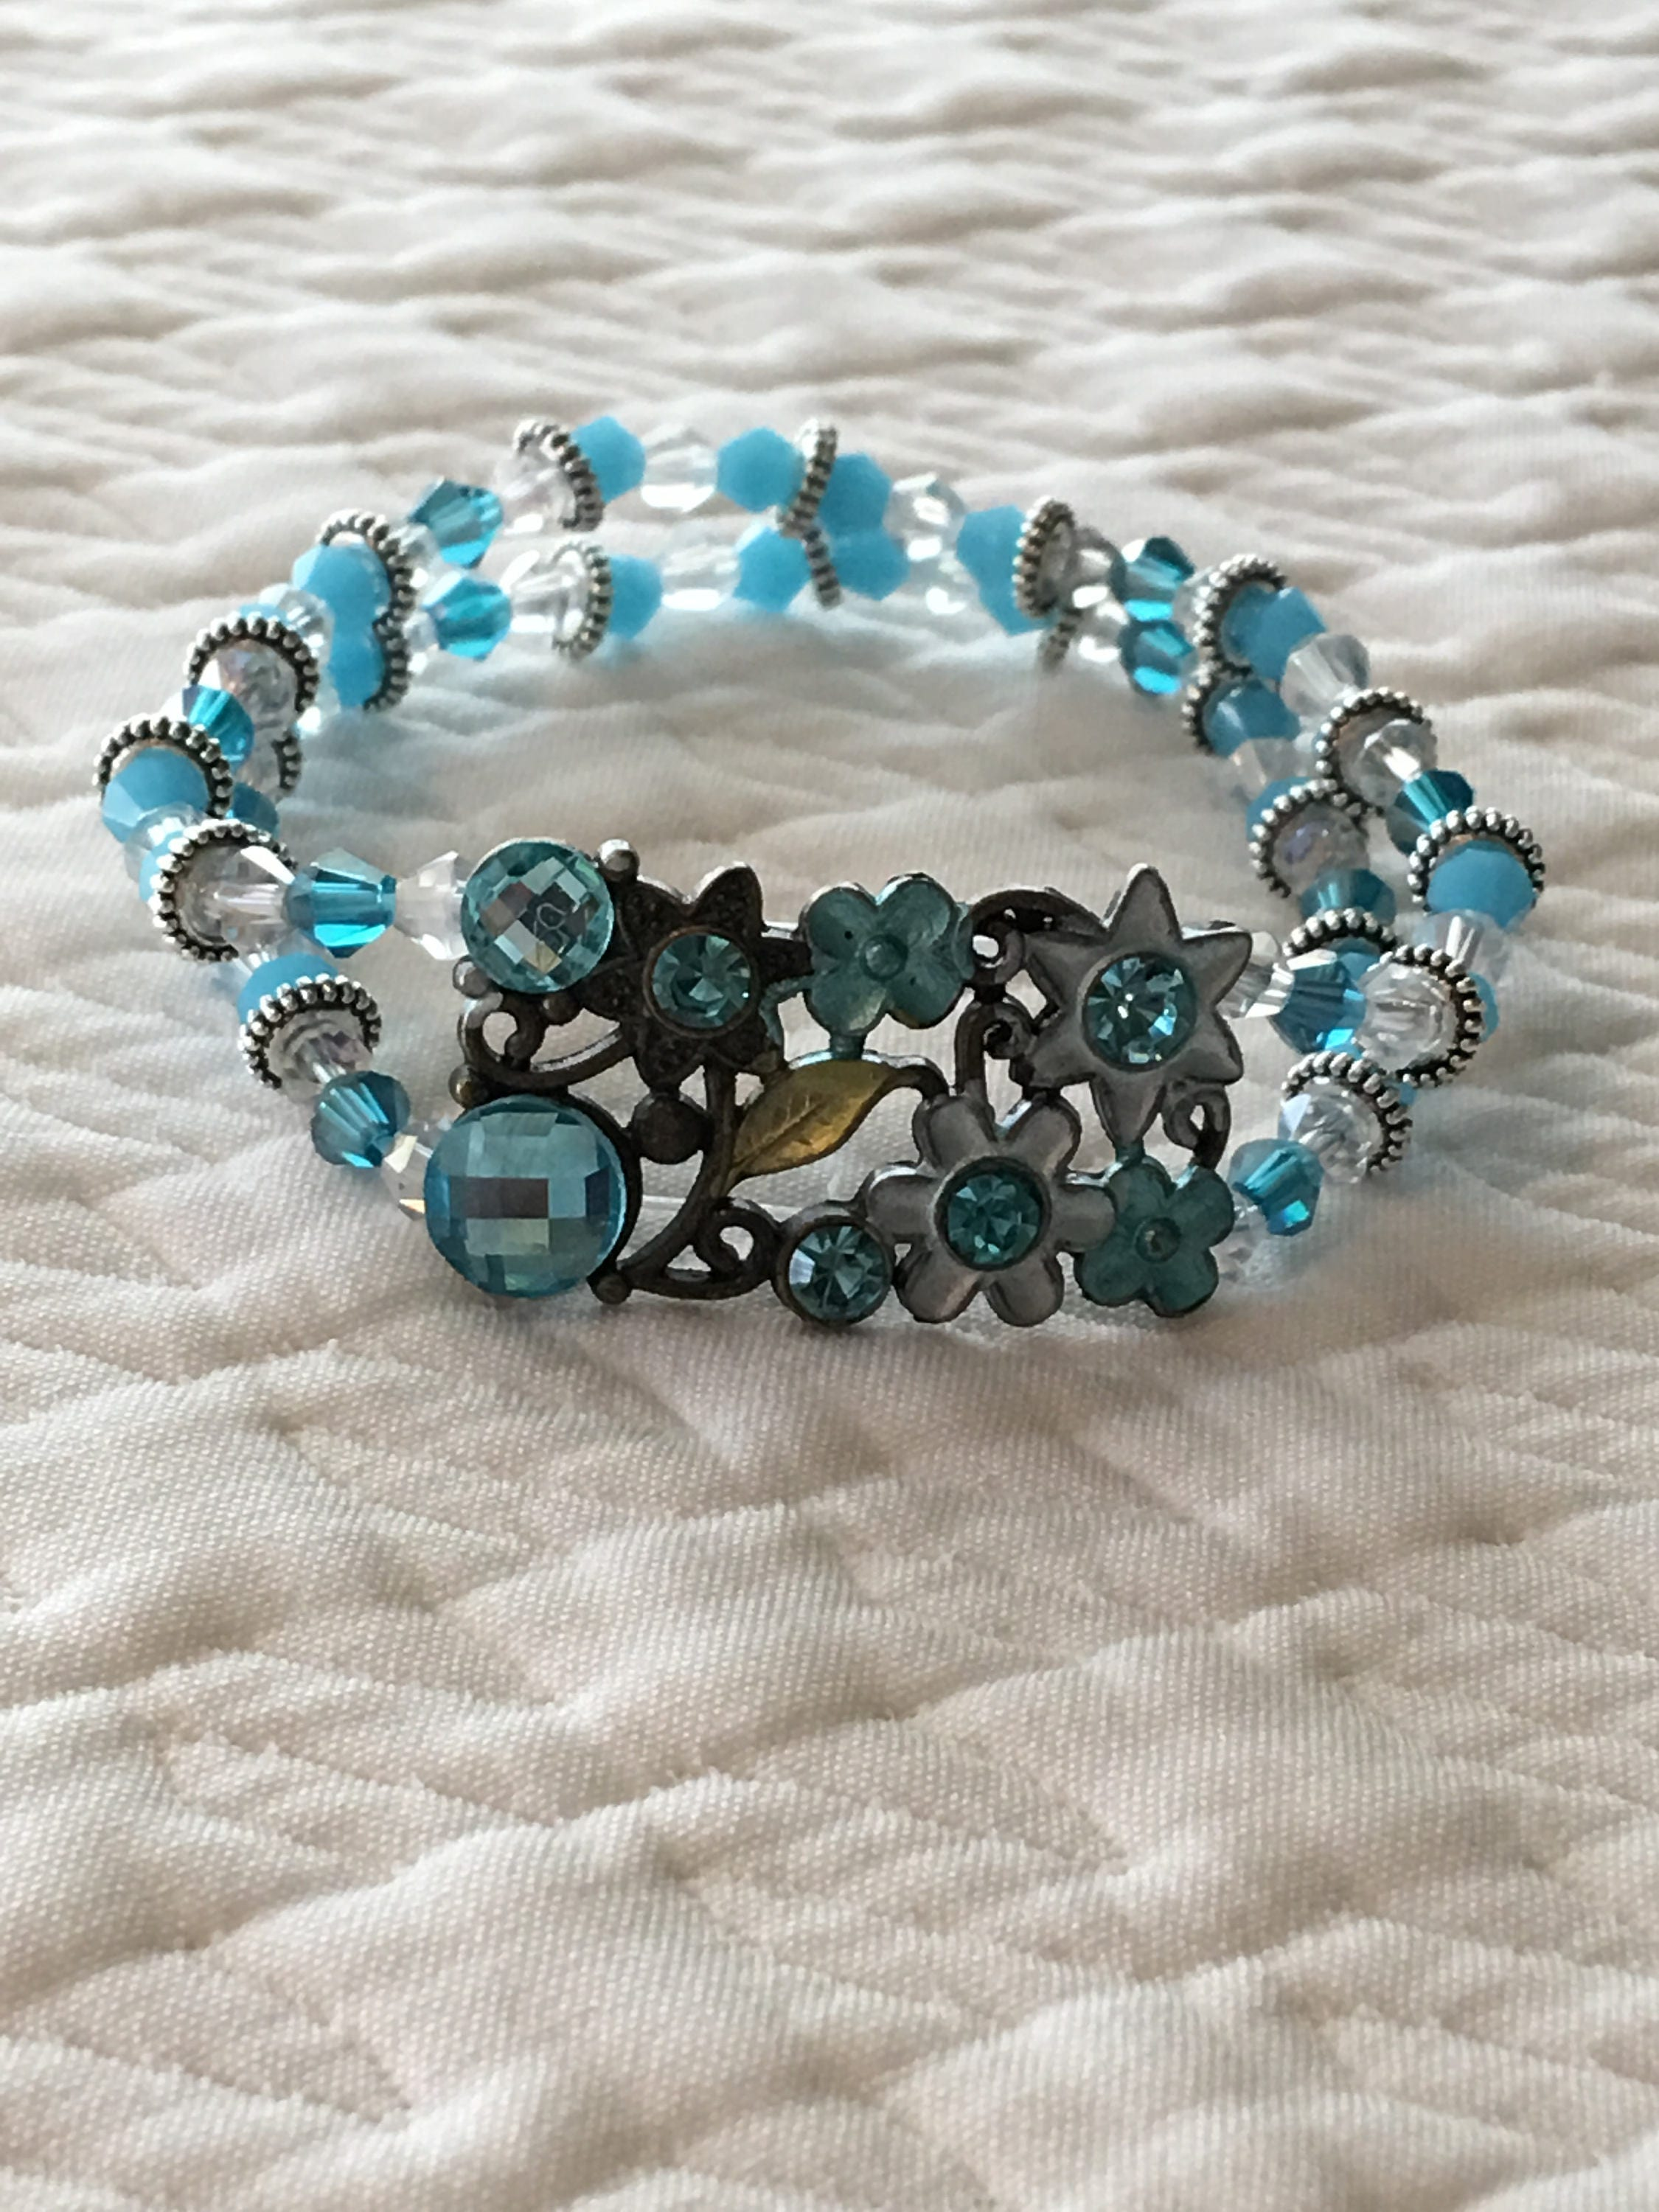 awareness design now dysautonomia turquoise bracelet with raise wristbands bands custom blog